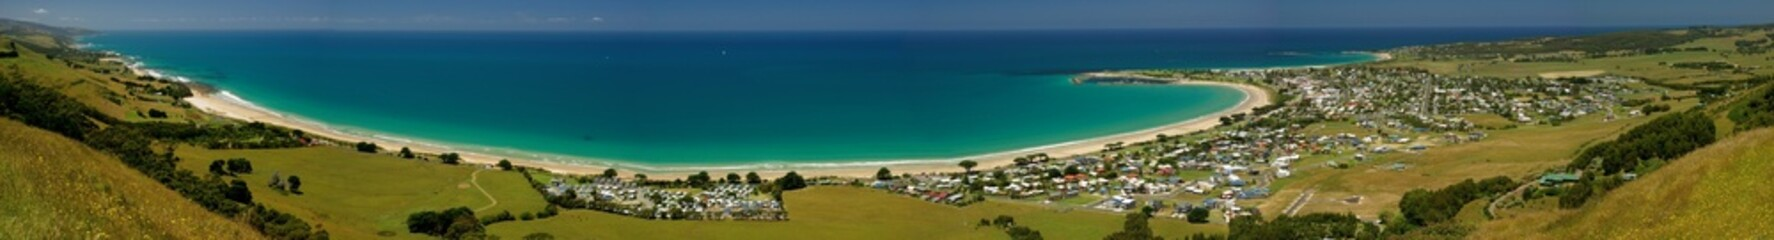 Apollo Bay, Great Ocean Road, Australia